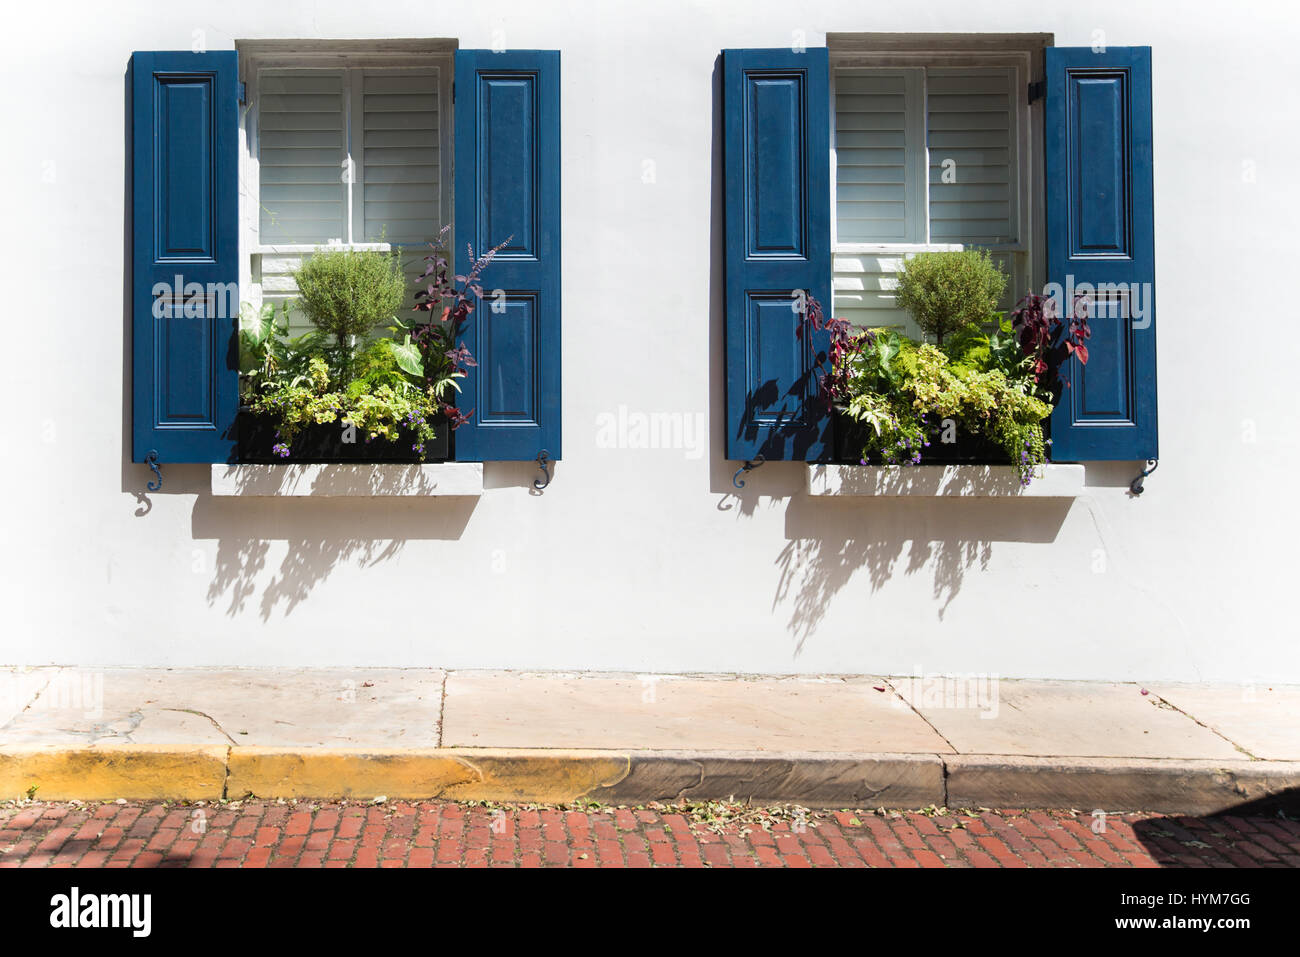 Two colorful windows with planted window boxes on the streets of Charleston, South Carolina. Stock Photo